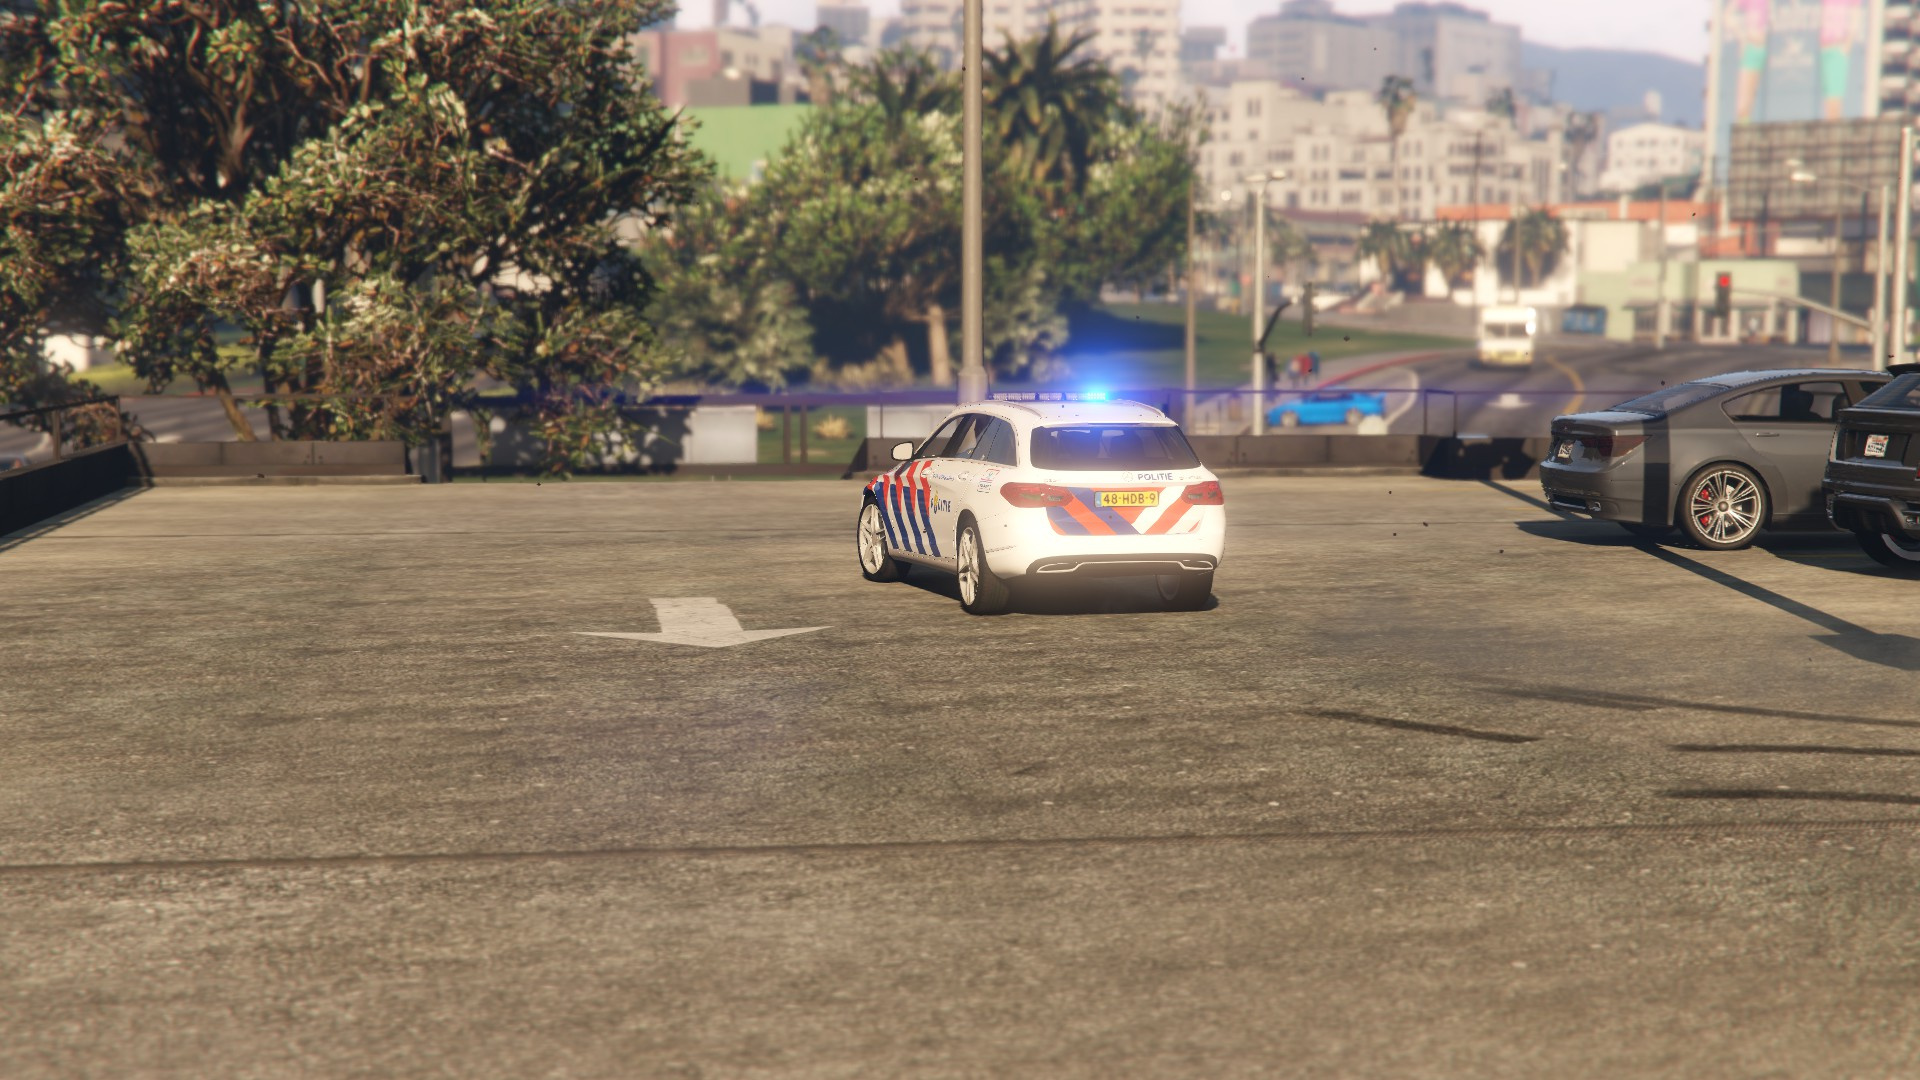 gta 5 modding how to add extra police vehicles